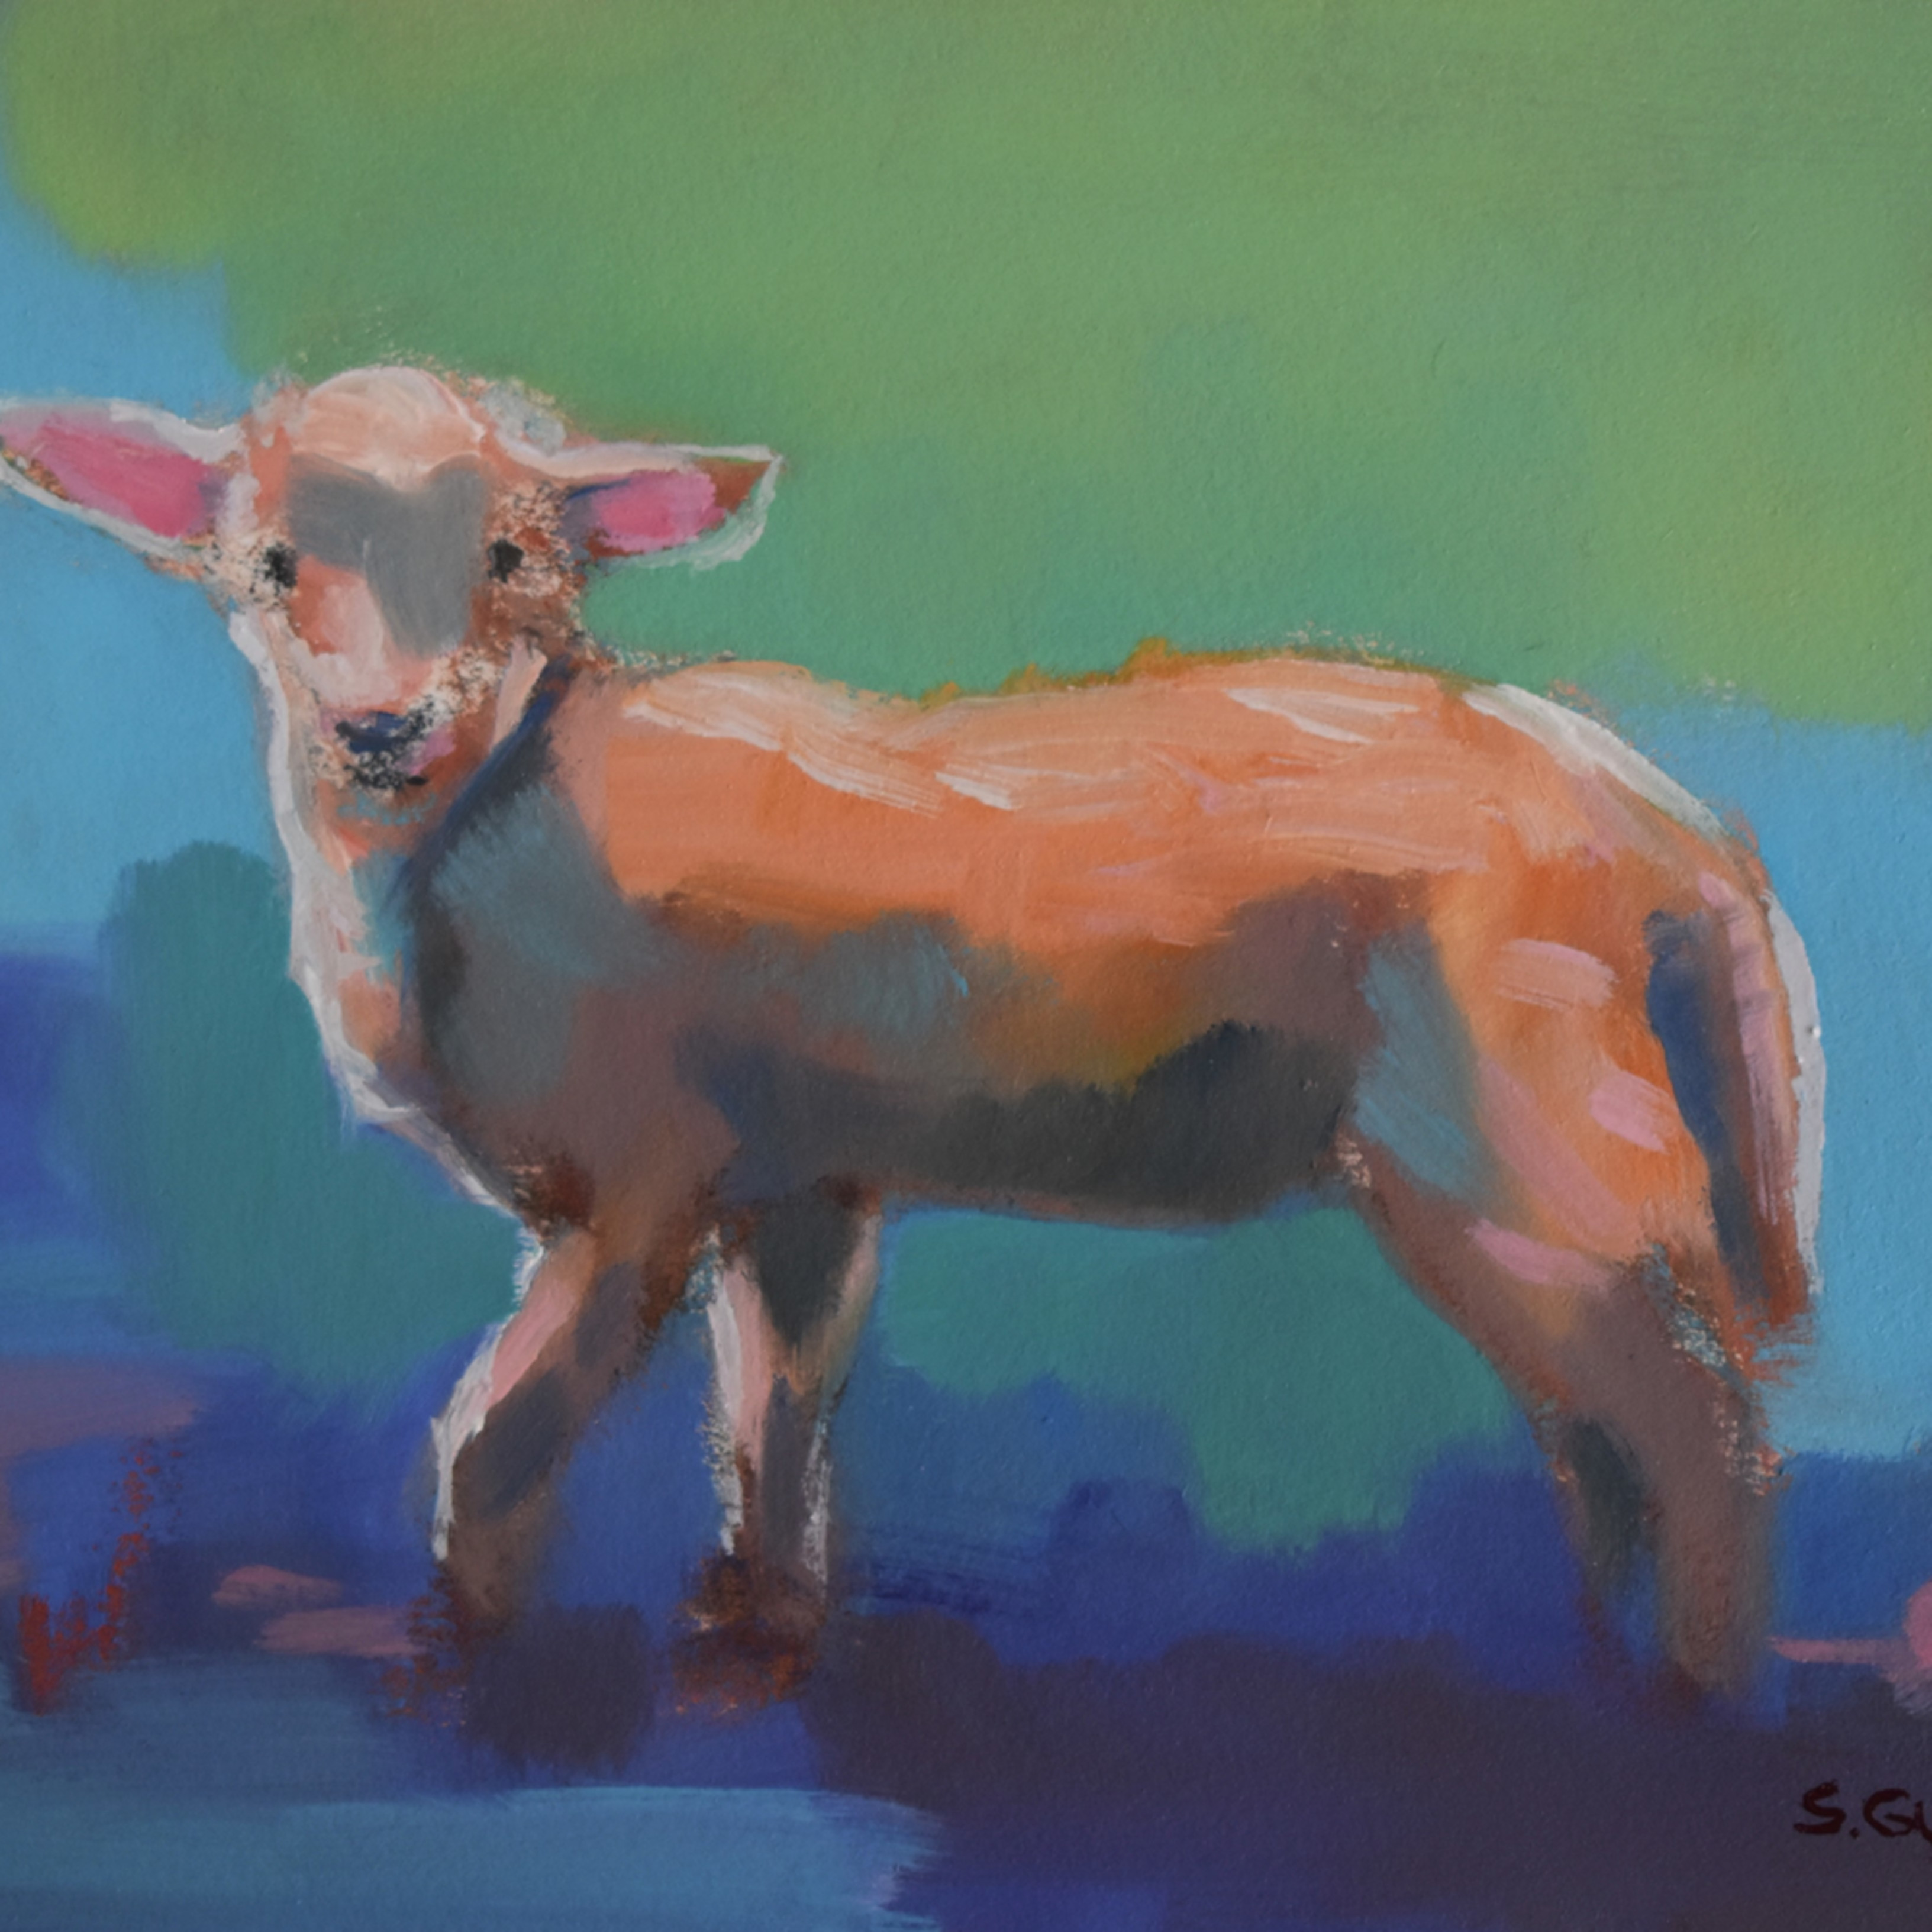 Lamb on blue gvpwxu